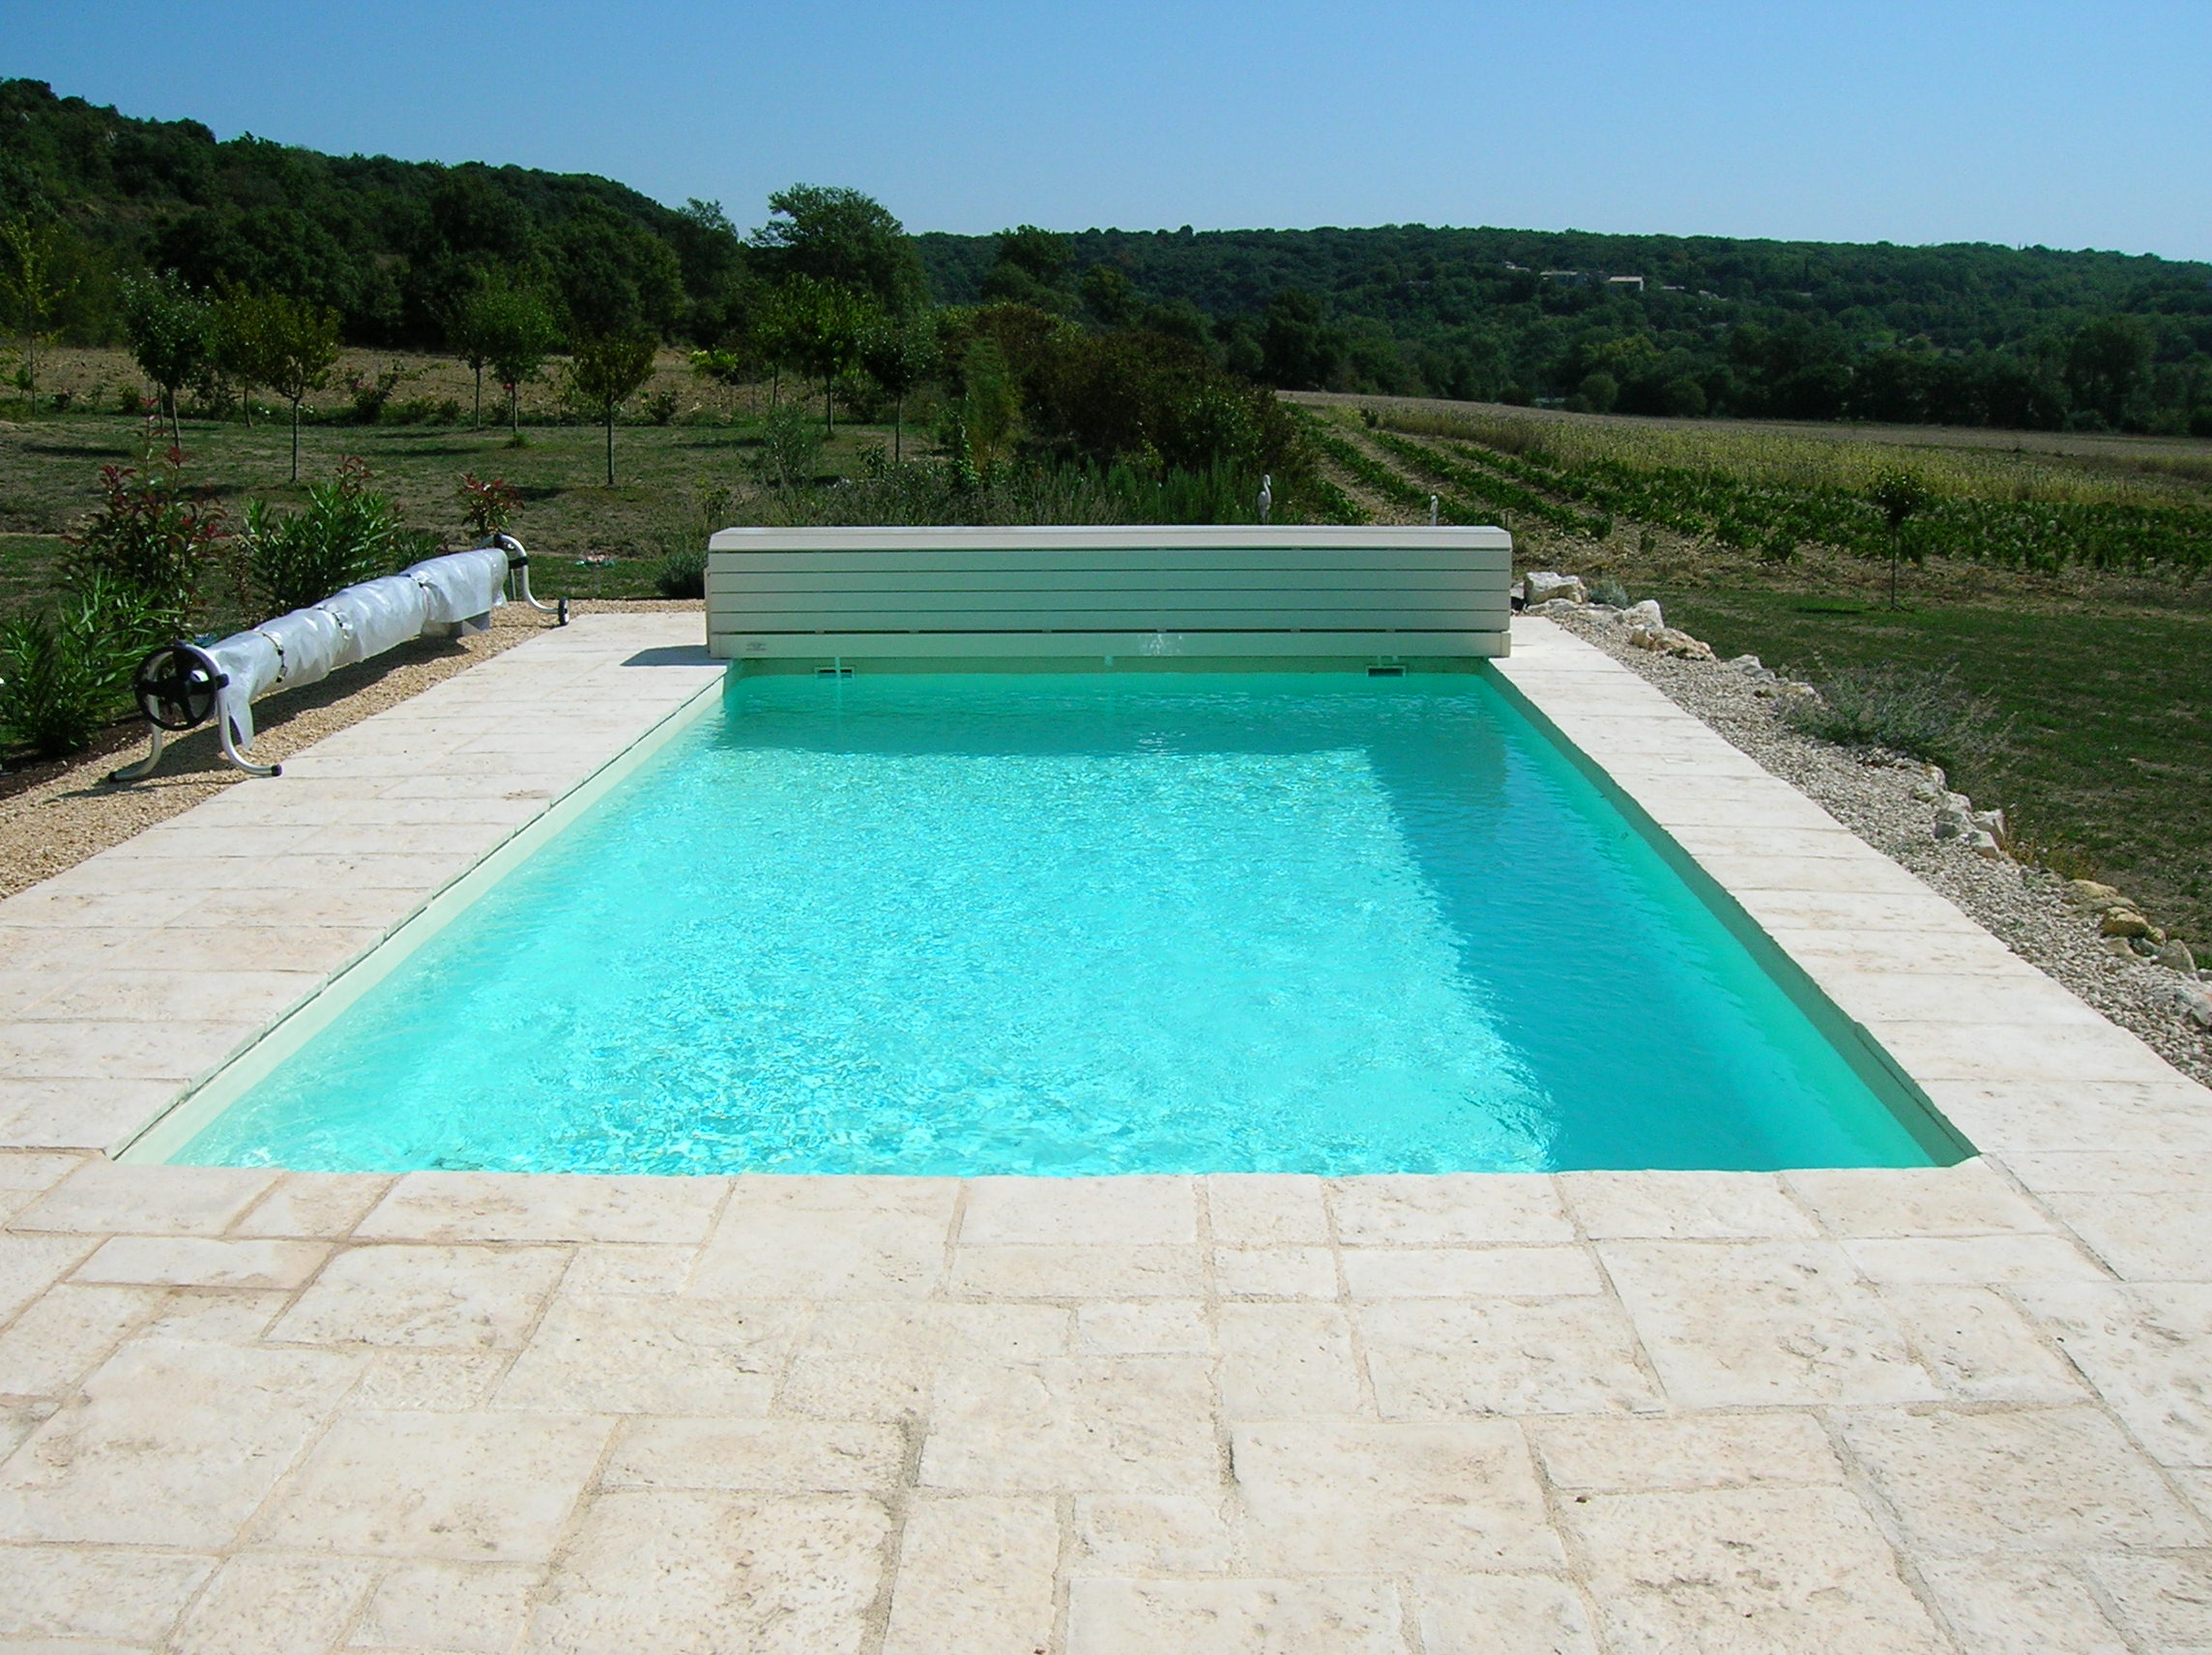 Construction piscines Nimes- piscines_nimes-installation_piscines-amenagement_piscine-piscine_en_kit-piscine_en_bois-piscine_hors_sol-terrassement_piscine-installation_spa-renovation_piscines